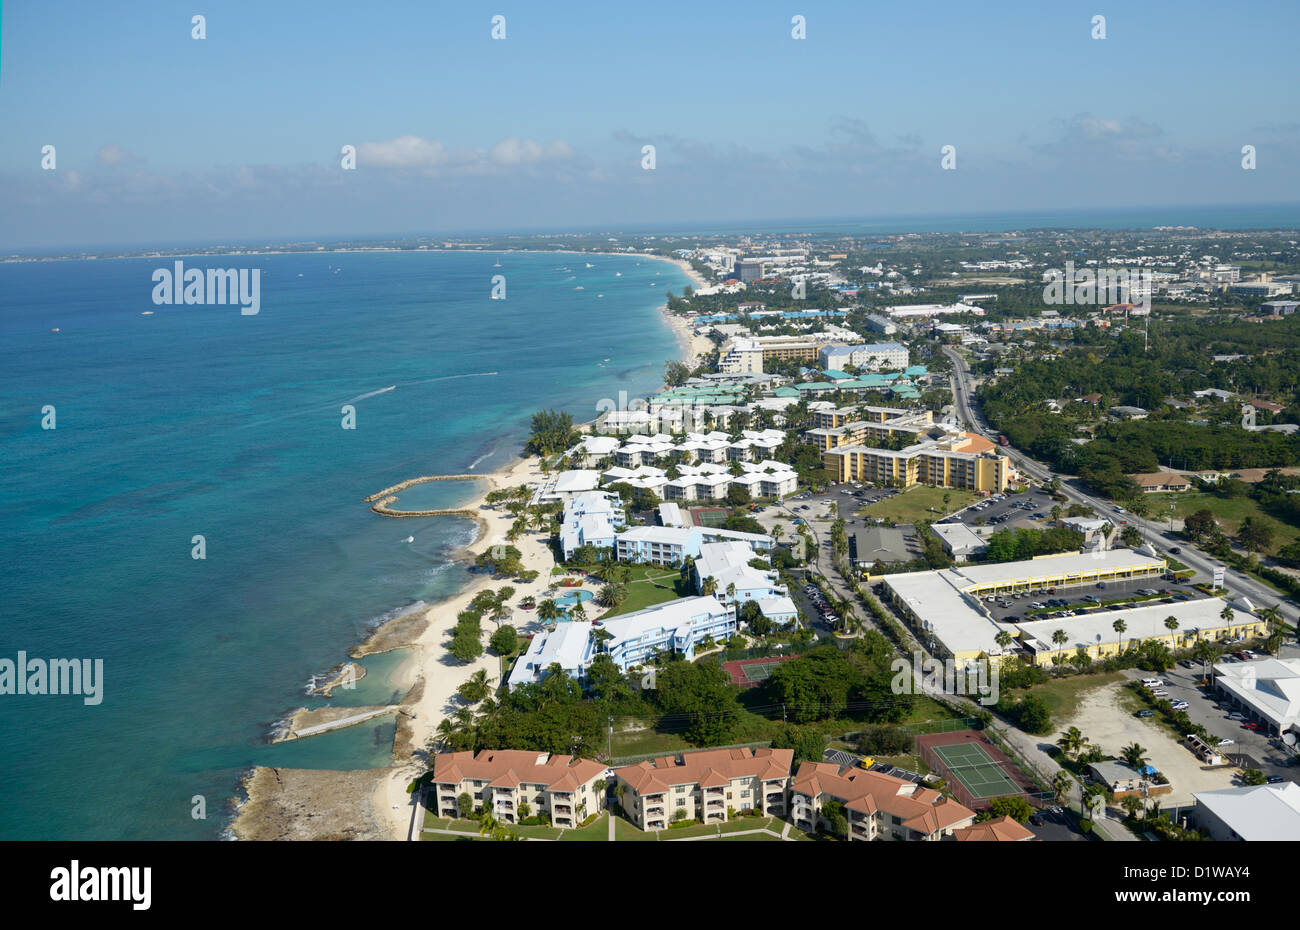 Seven Mile Beach area of Grand Cayman, looking north, from air - Stock Image